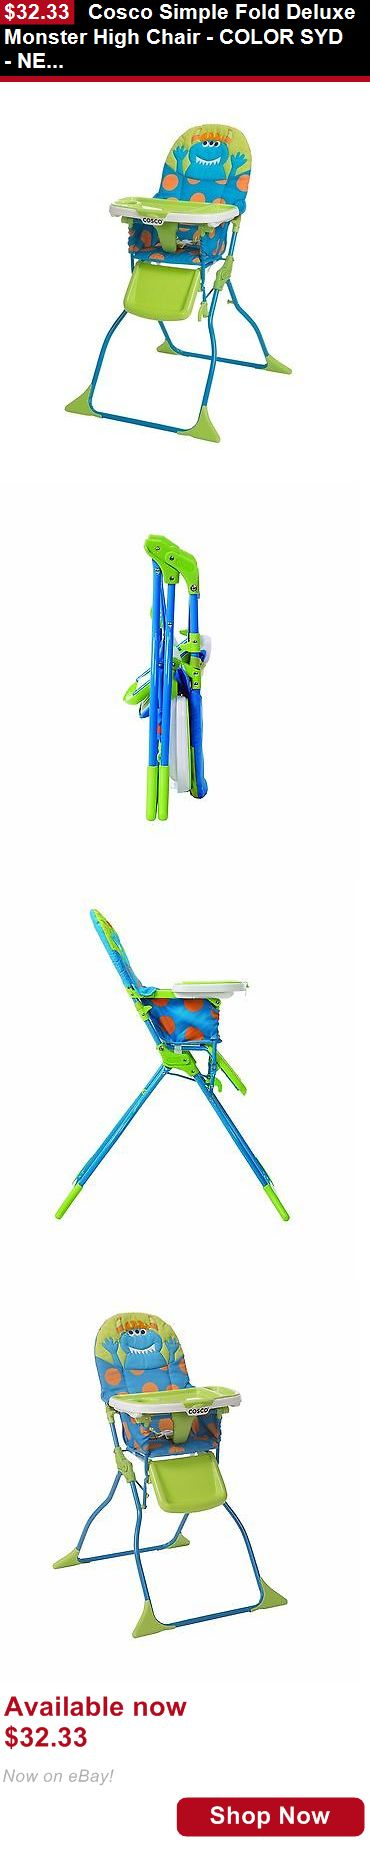 Baby High Chairs: Cosco Simple Fold Deluxe Monster High Chair - Color Syd - New And Freeshipping BUY IT NOW ONLY: $32.33